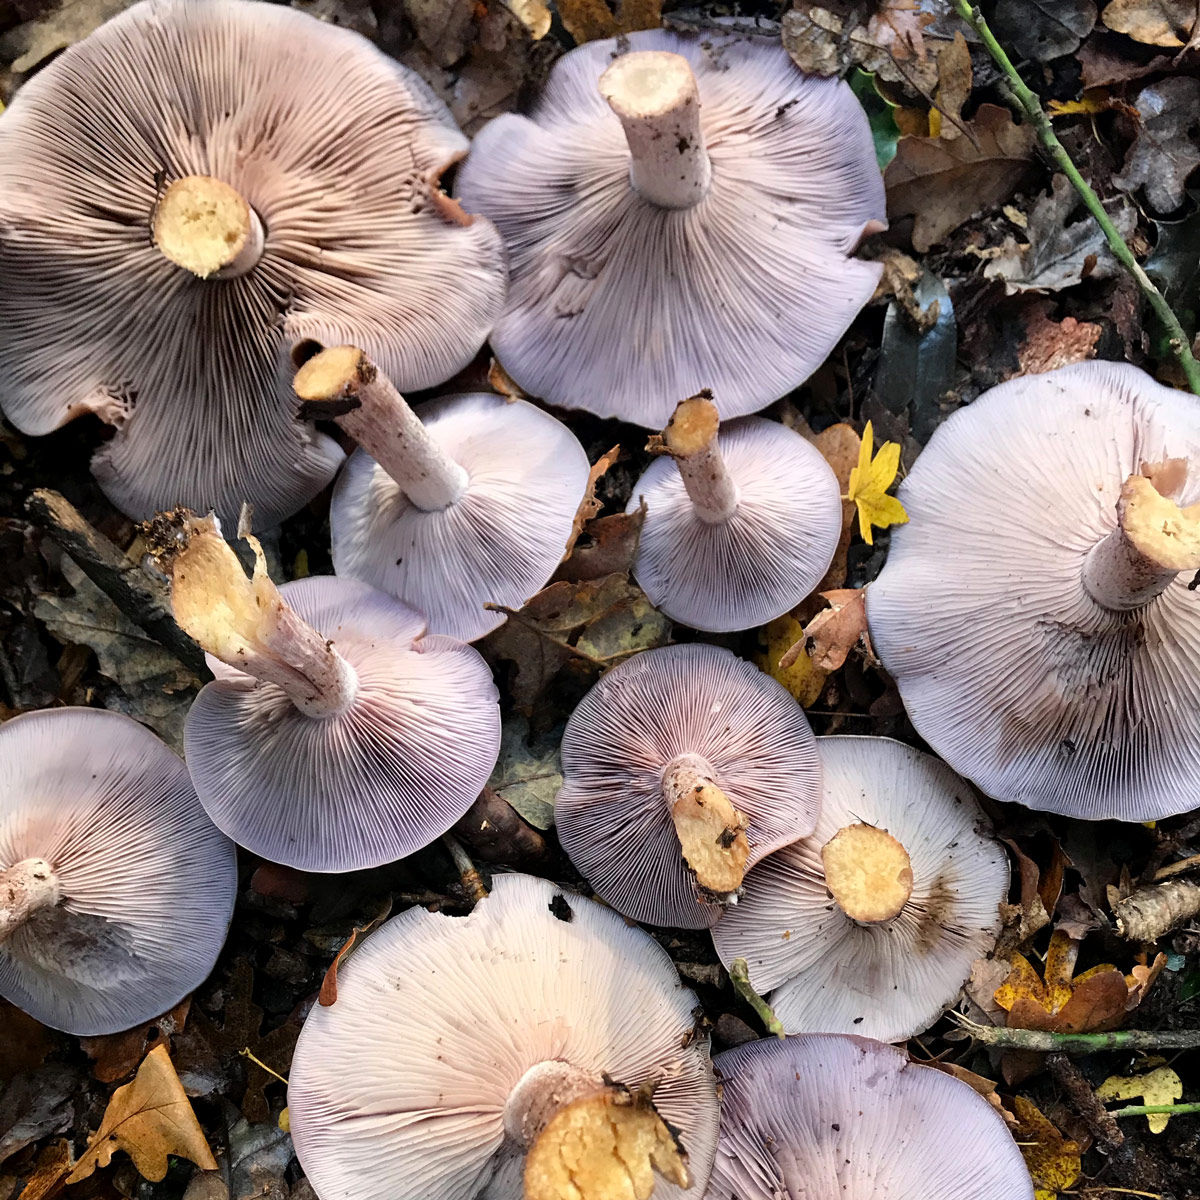 Harvested field blewits, lying upside down